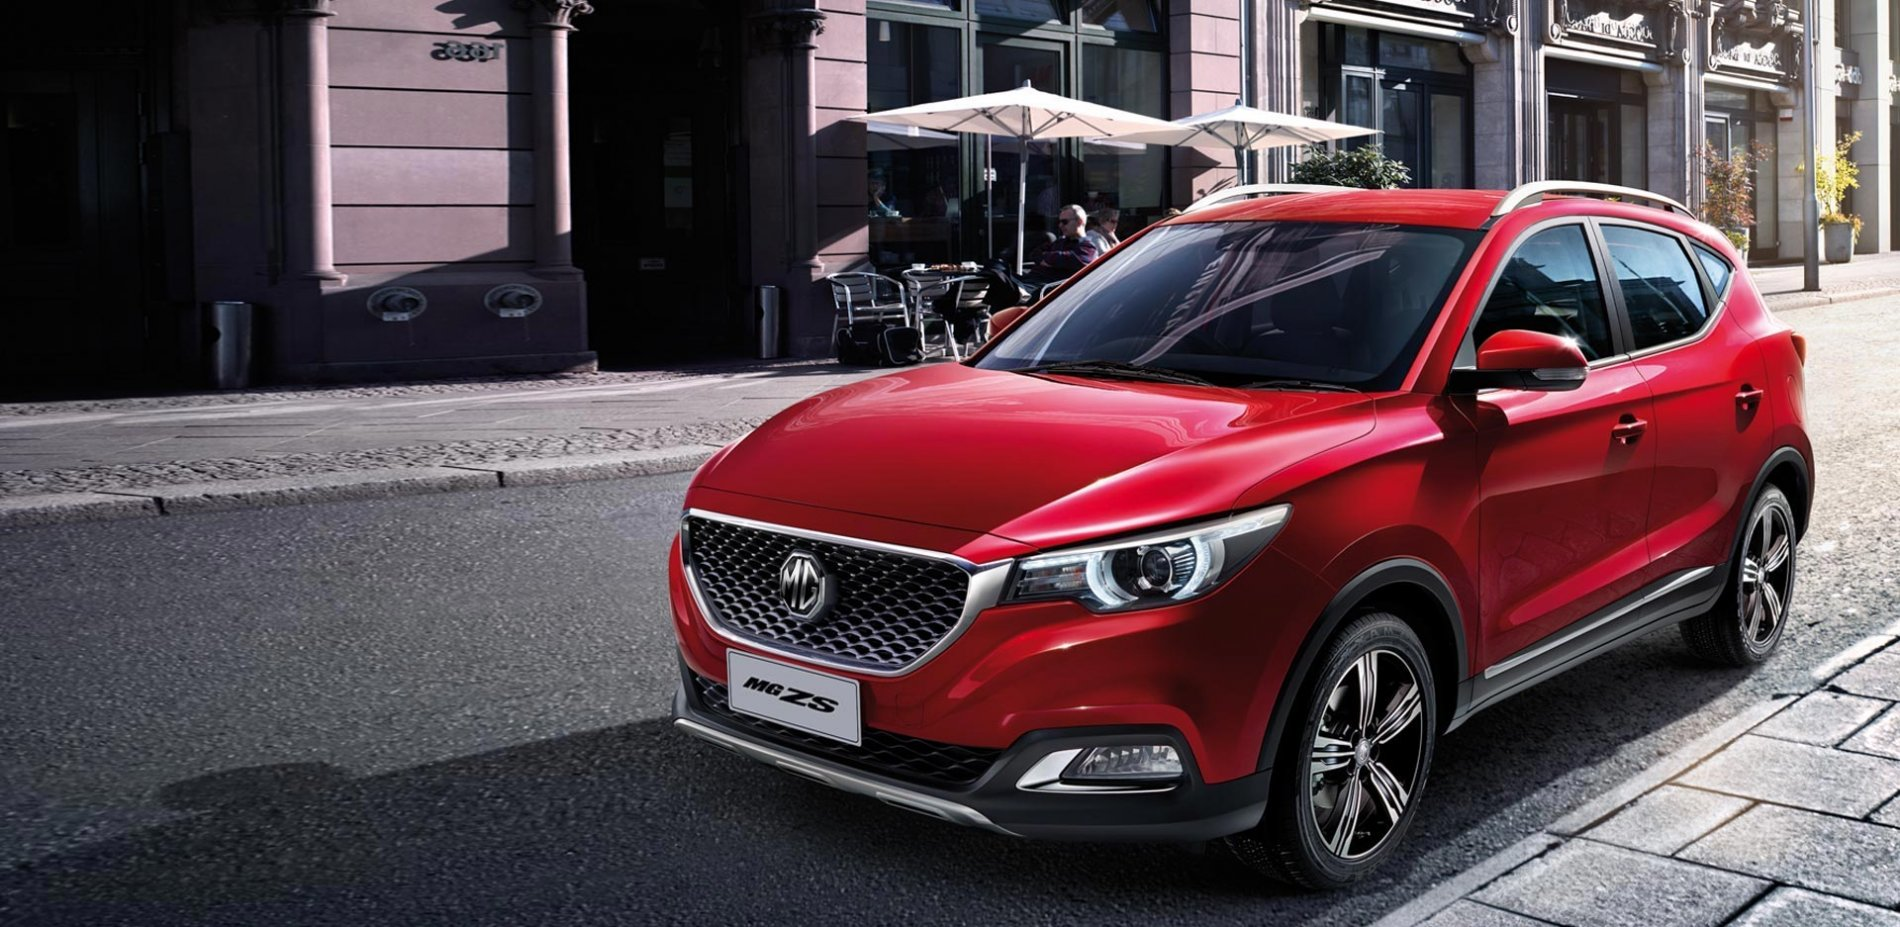 MEET THE NEW MG ZS